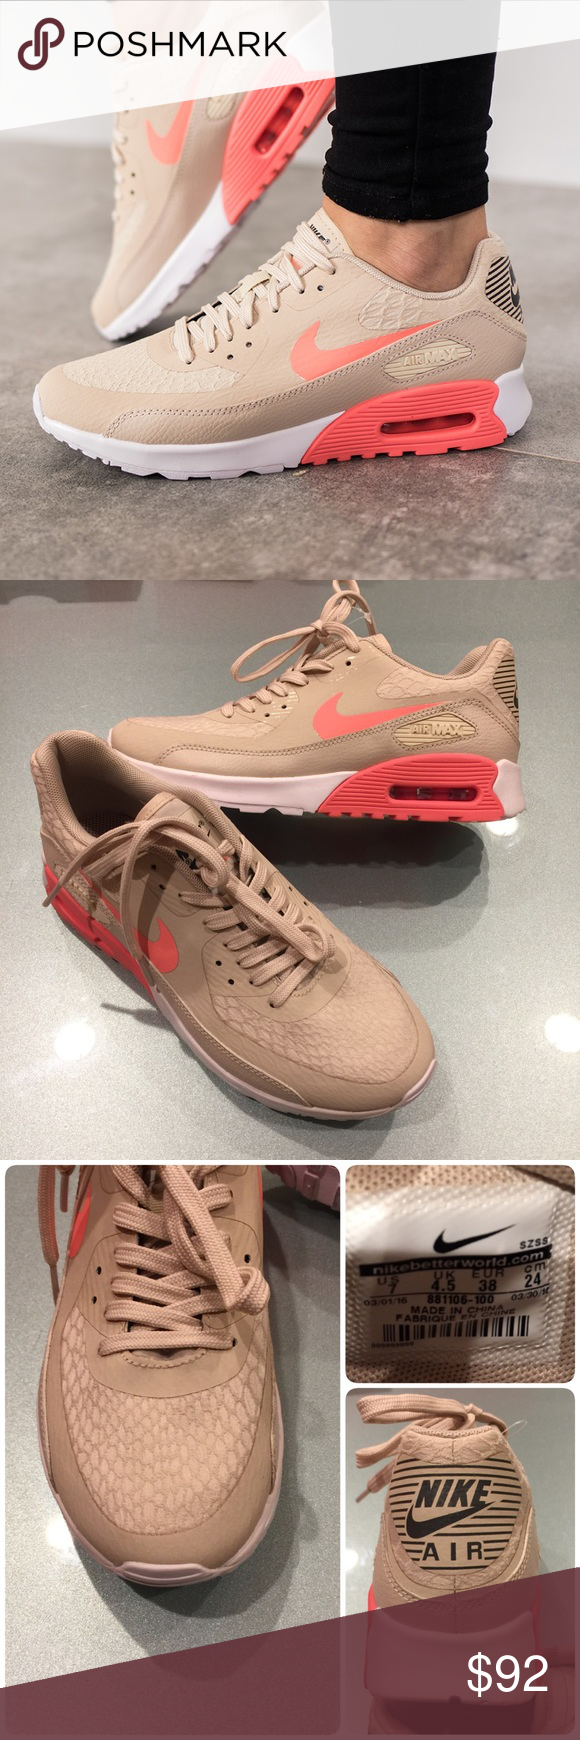 best website 1f6d9 cdf16 🌷Mint🌷 NIKE Air Max 90 Ultra 2.0 ~ size 7 worn only once ~